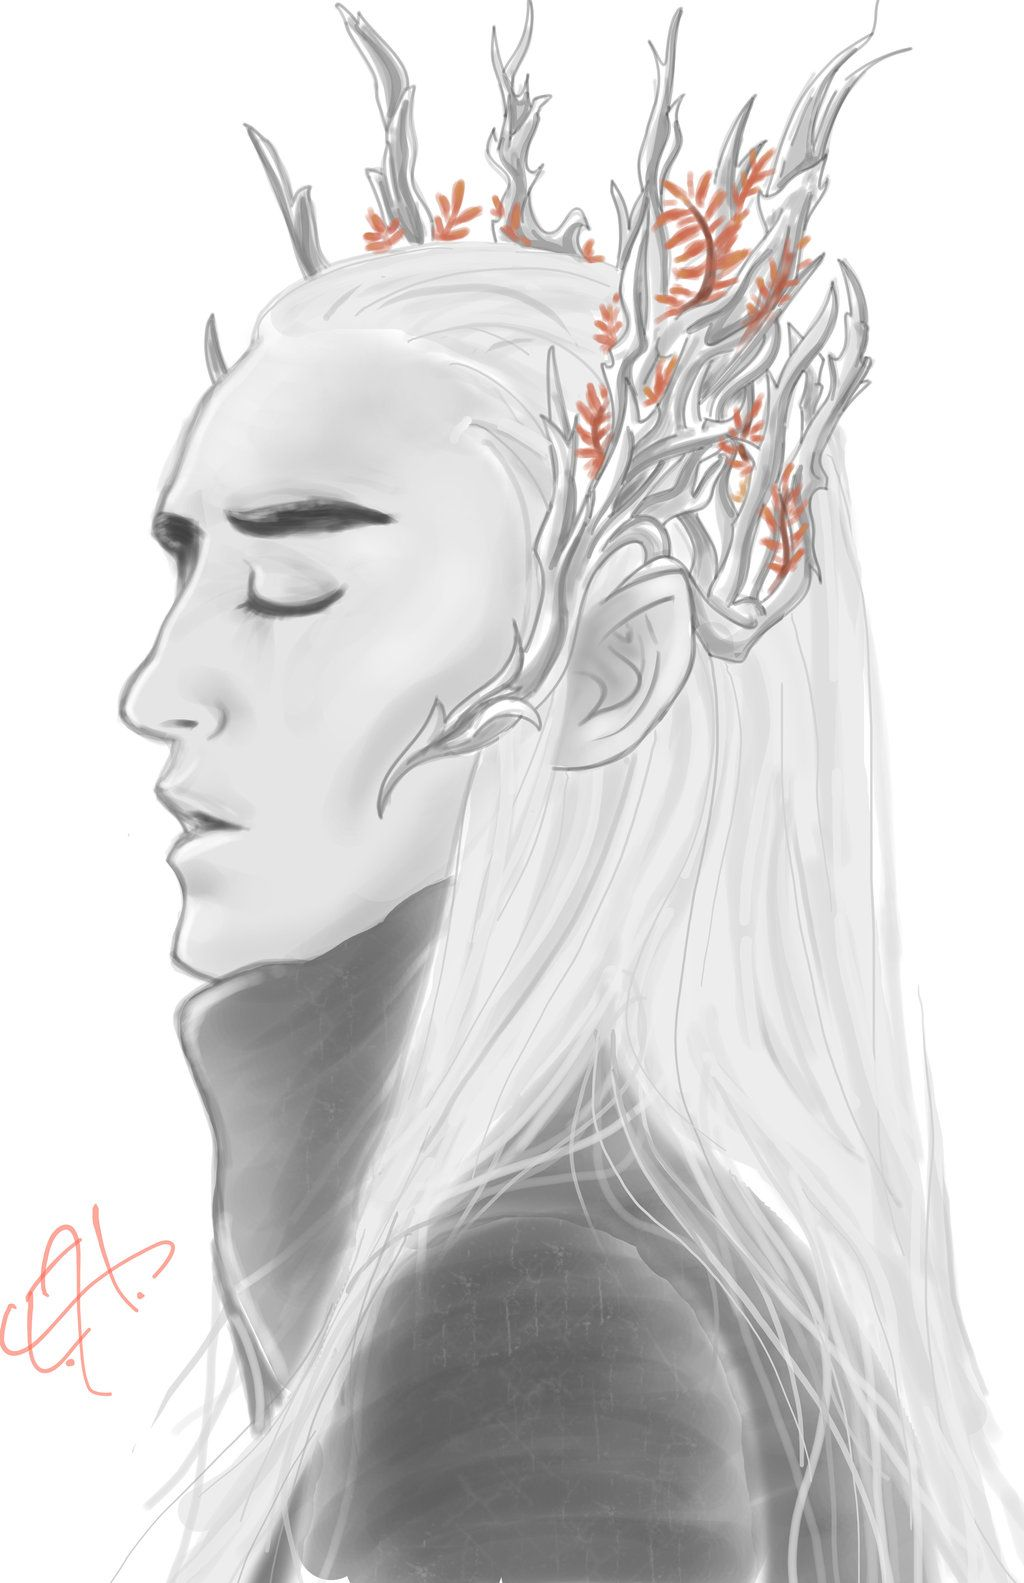 Thranduil by BlueFire795.deviantart.com on @deviantART